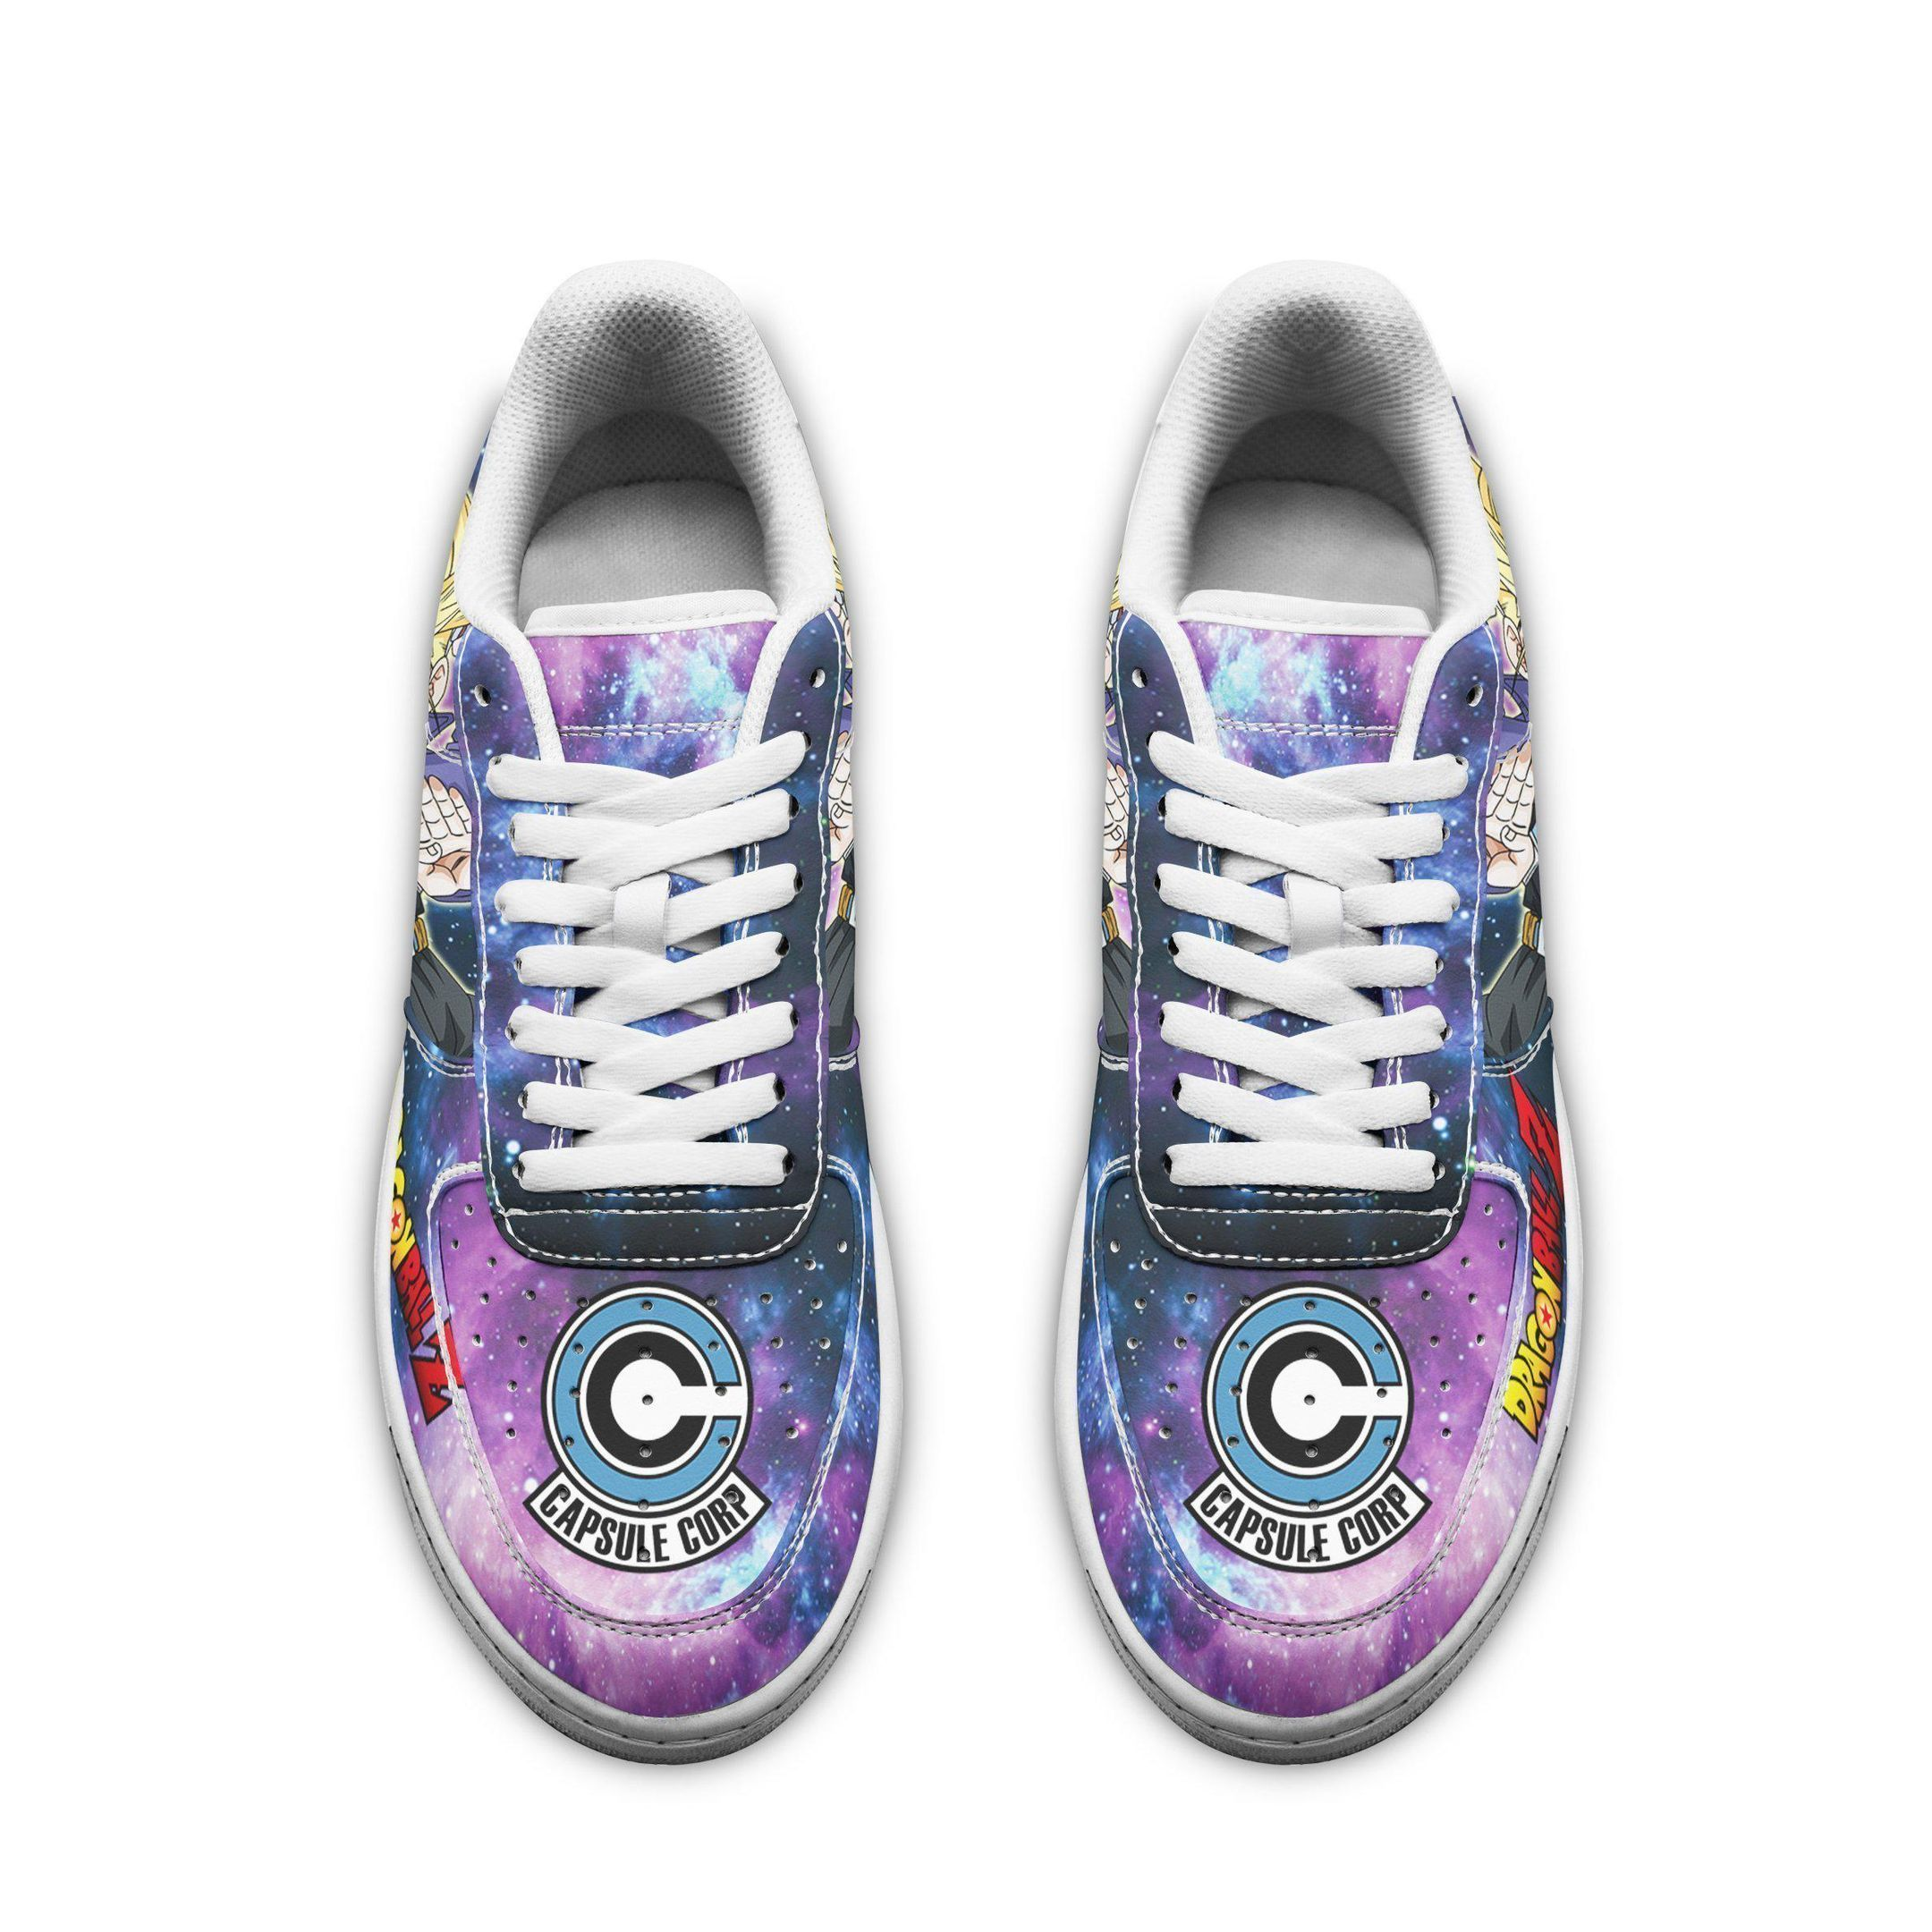 Trunks Air Shoes Dragon Ball Z Anime Shoes Fan Gift GO1012